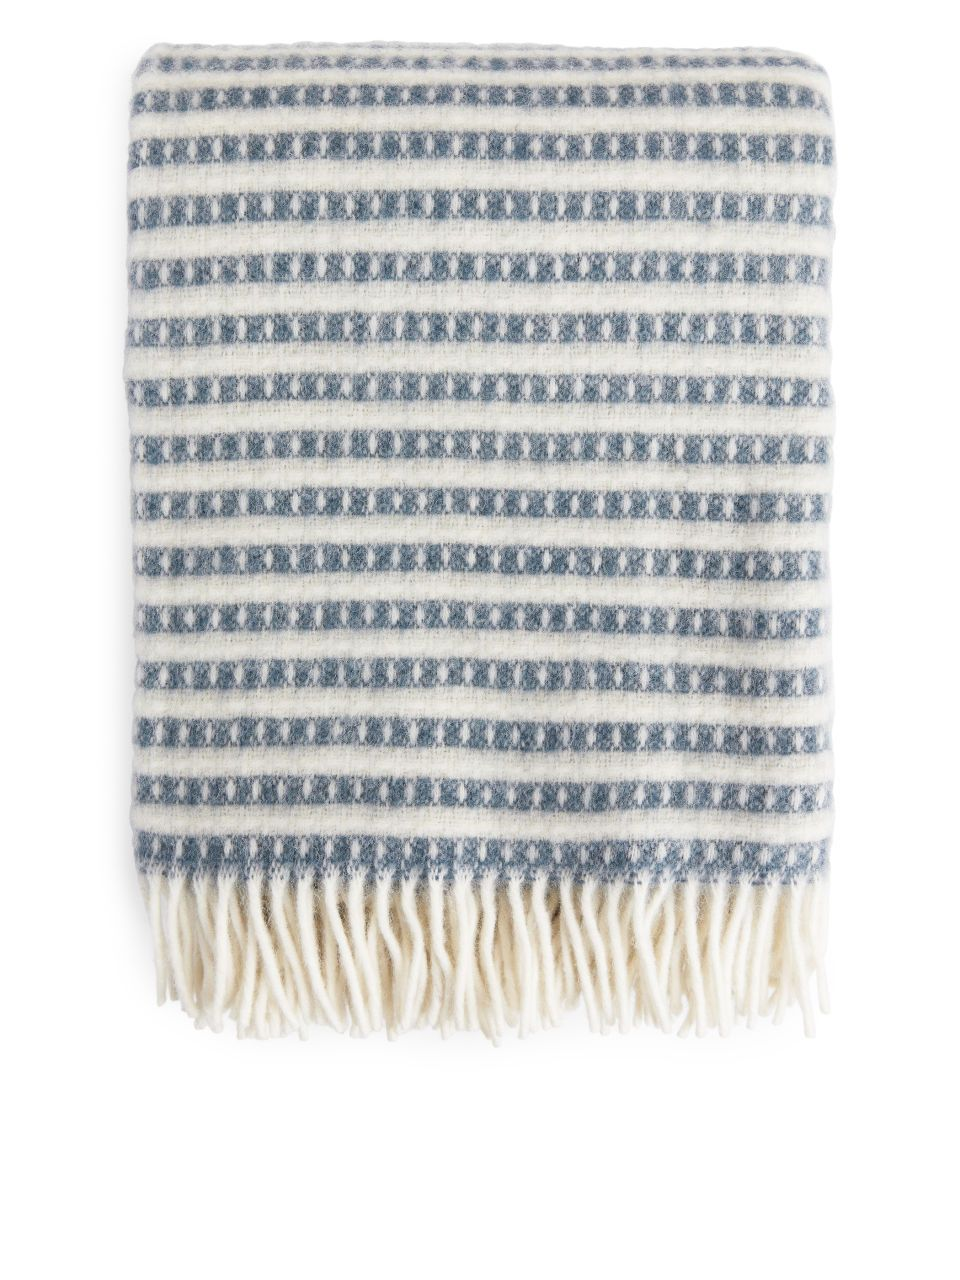 Klippan Olle Blanket Blue Off White Home Interior